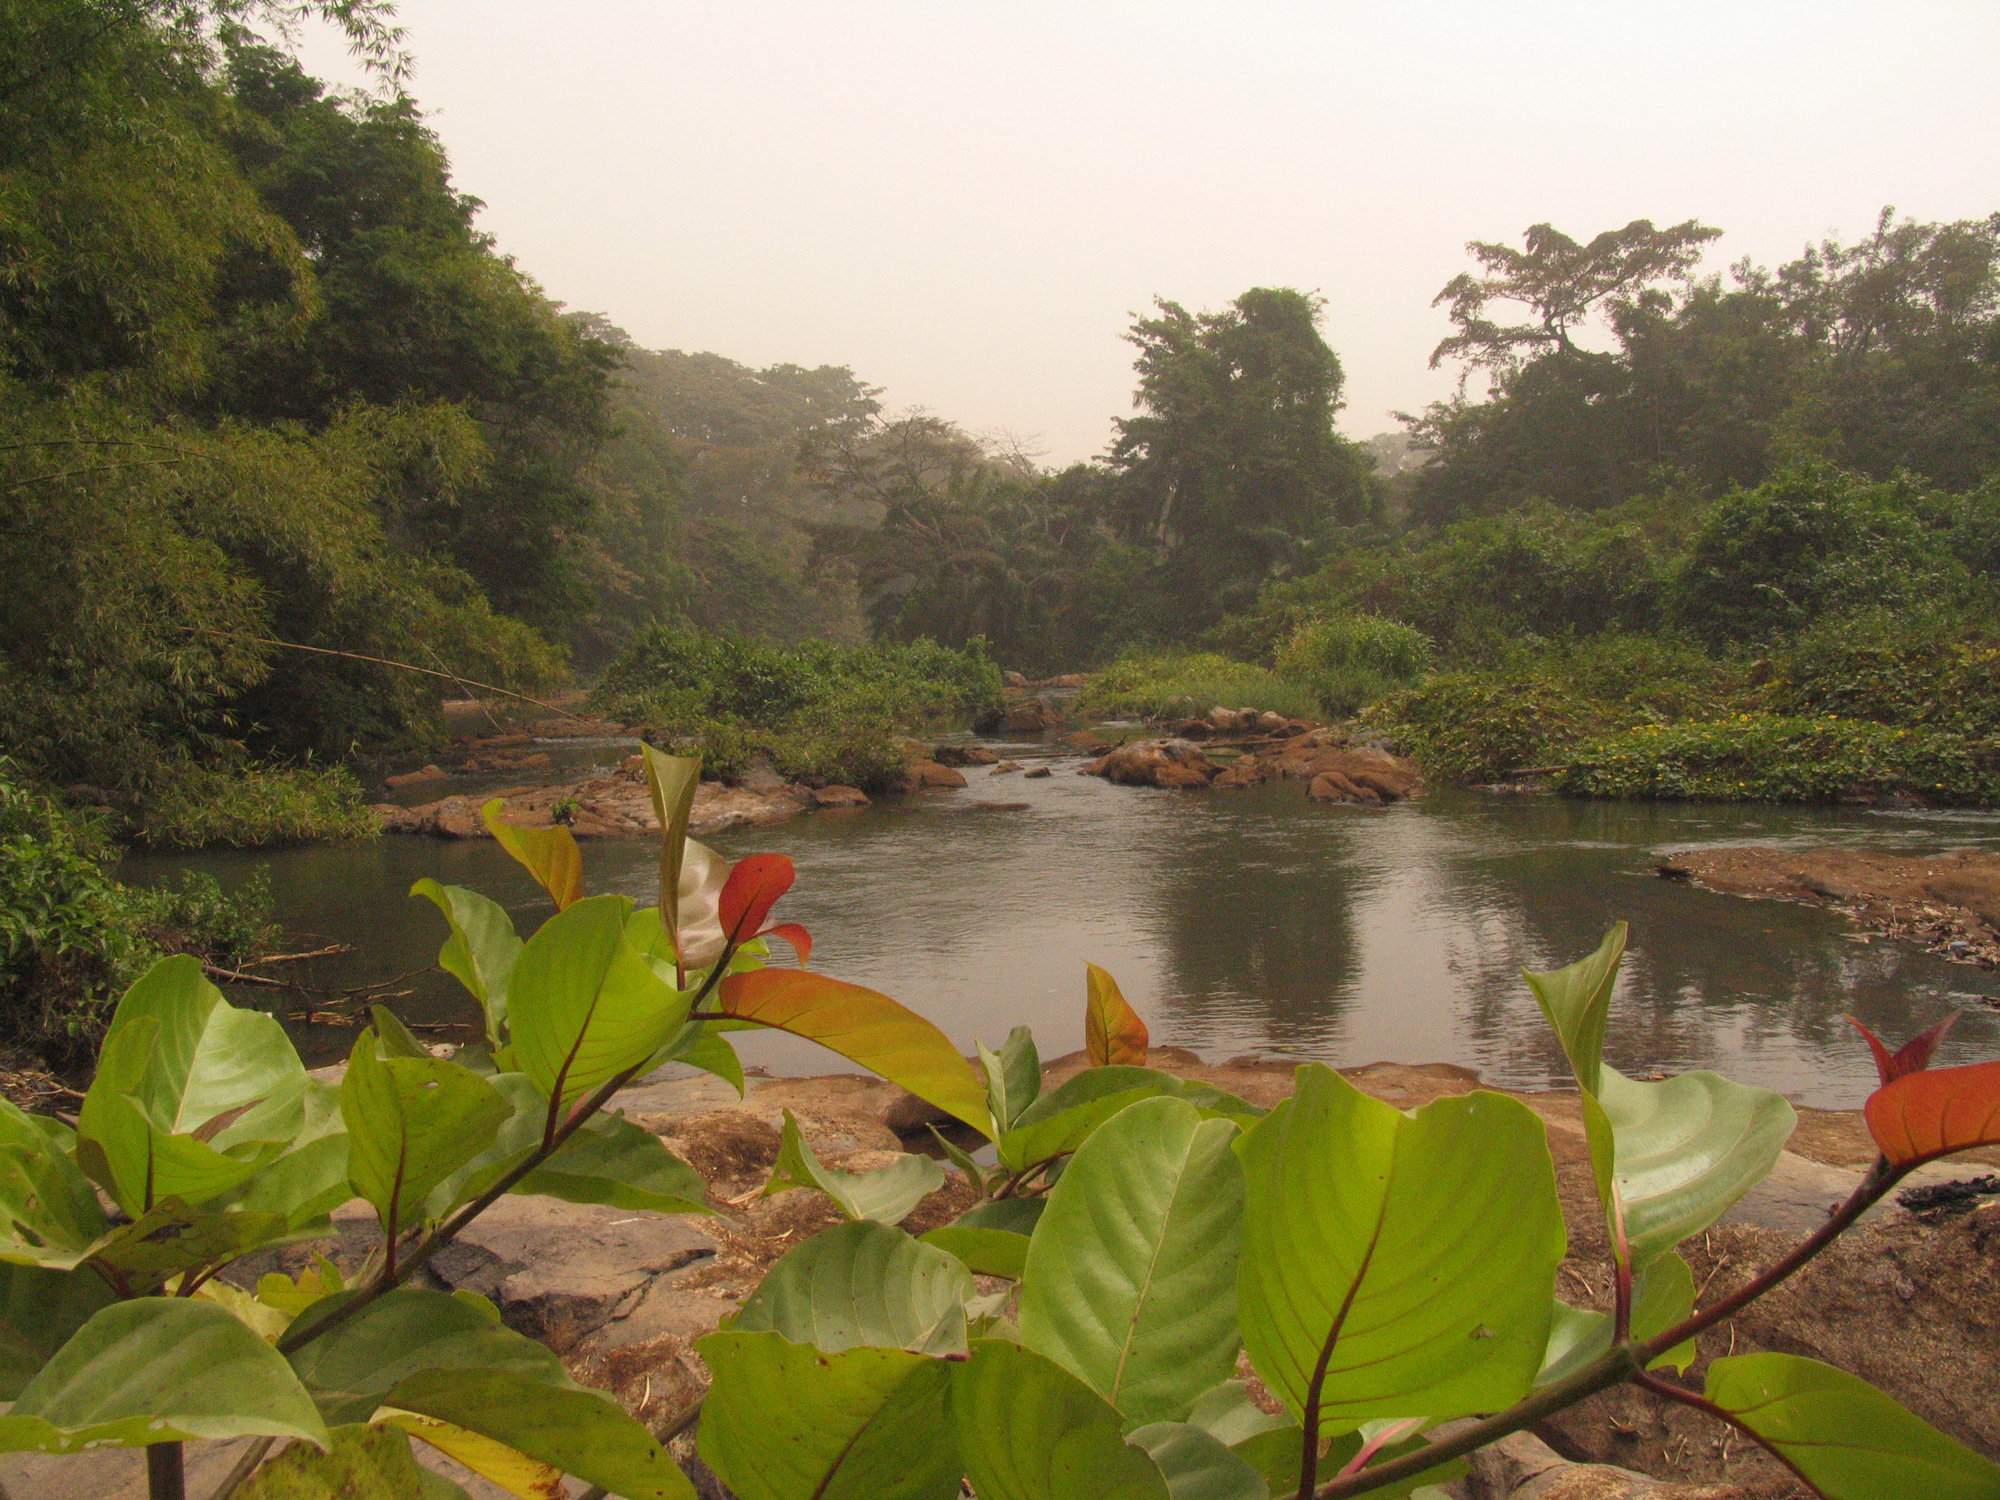 The Ọ̀ṣun river idyll at the Sacred Grove of Òṣogbo, today UNESCO world heritage site.©Wolfgang Denk